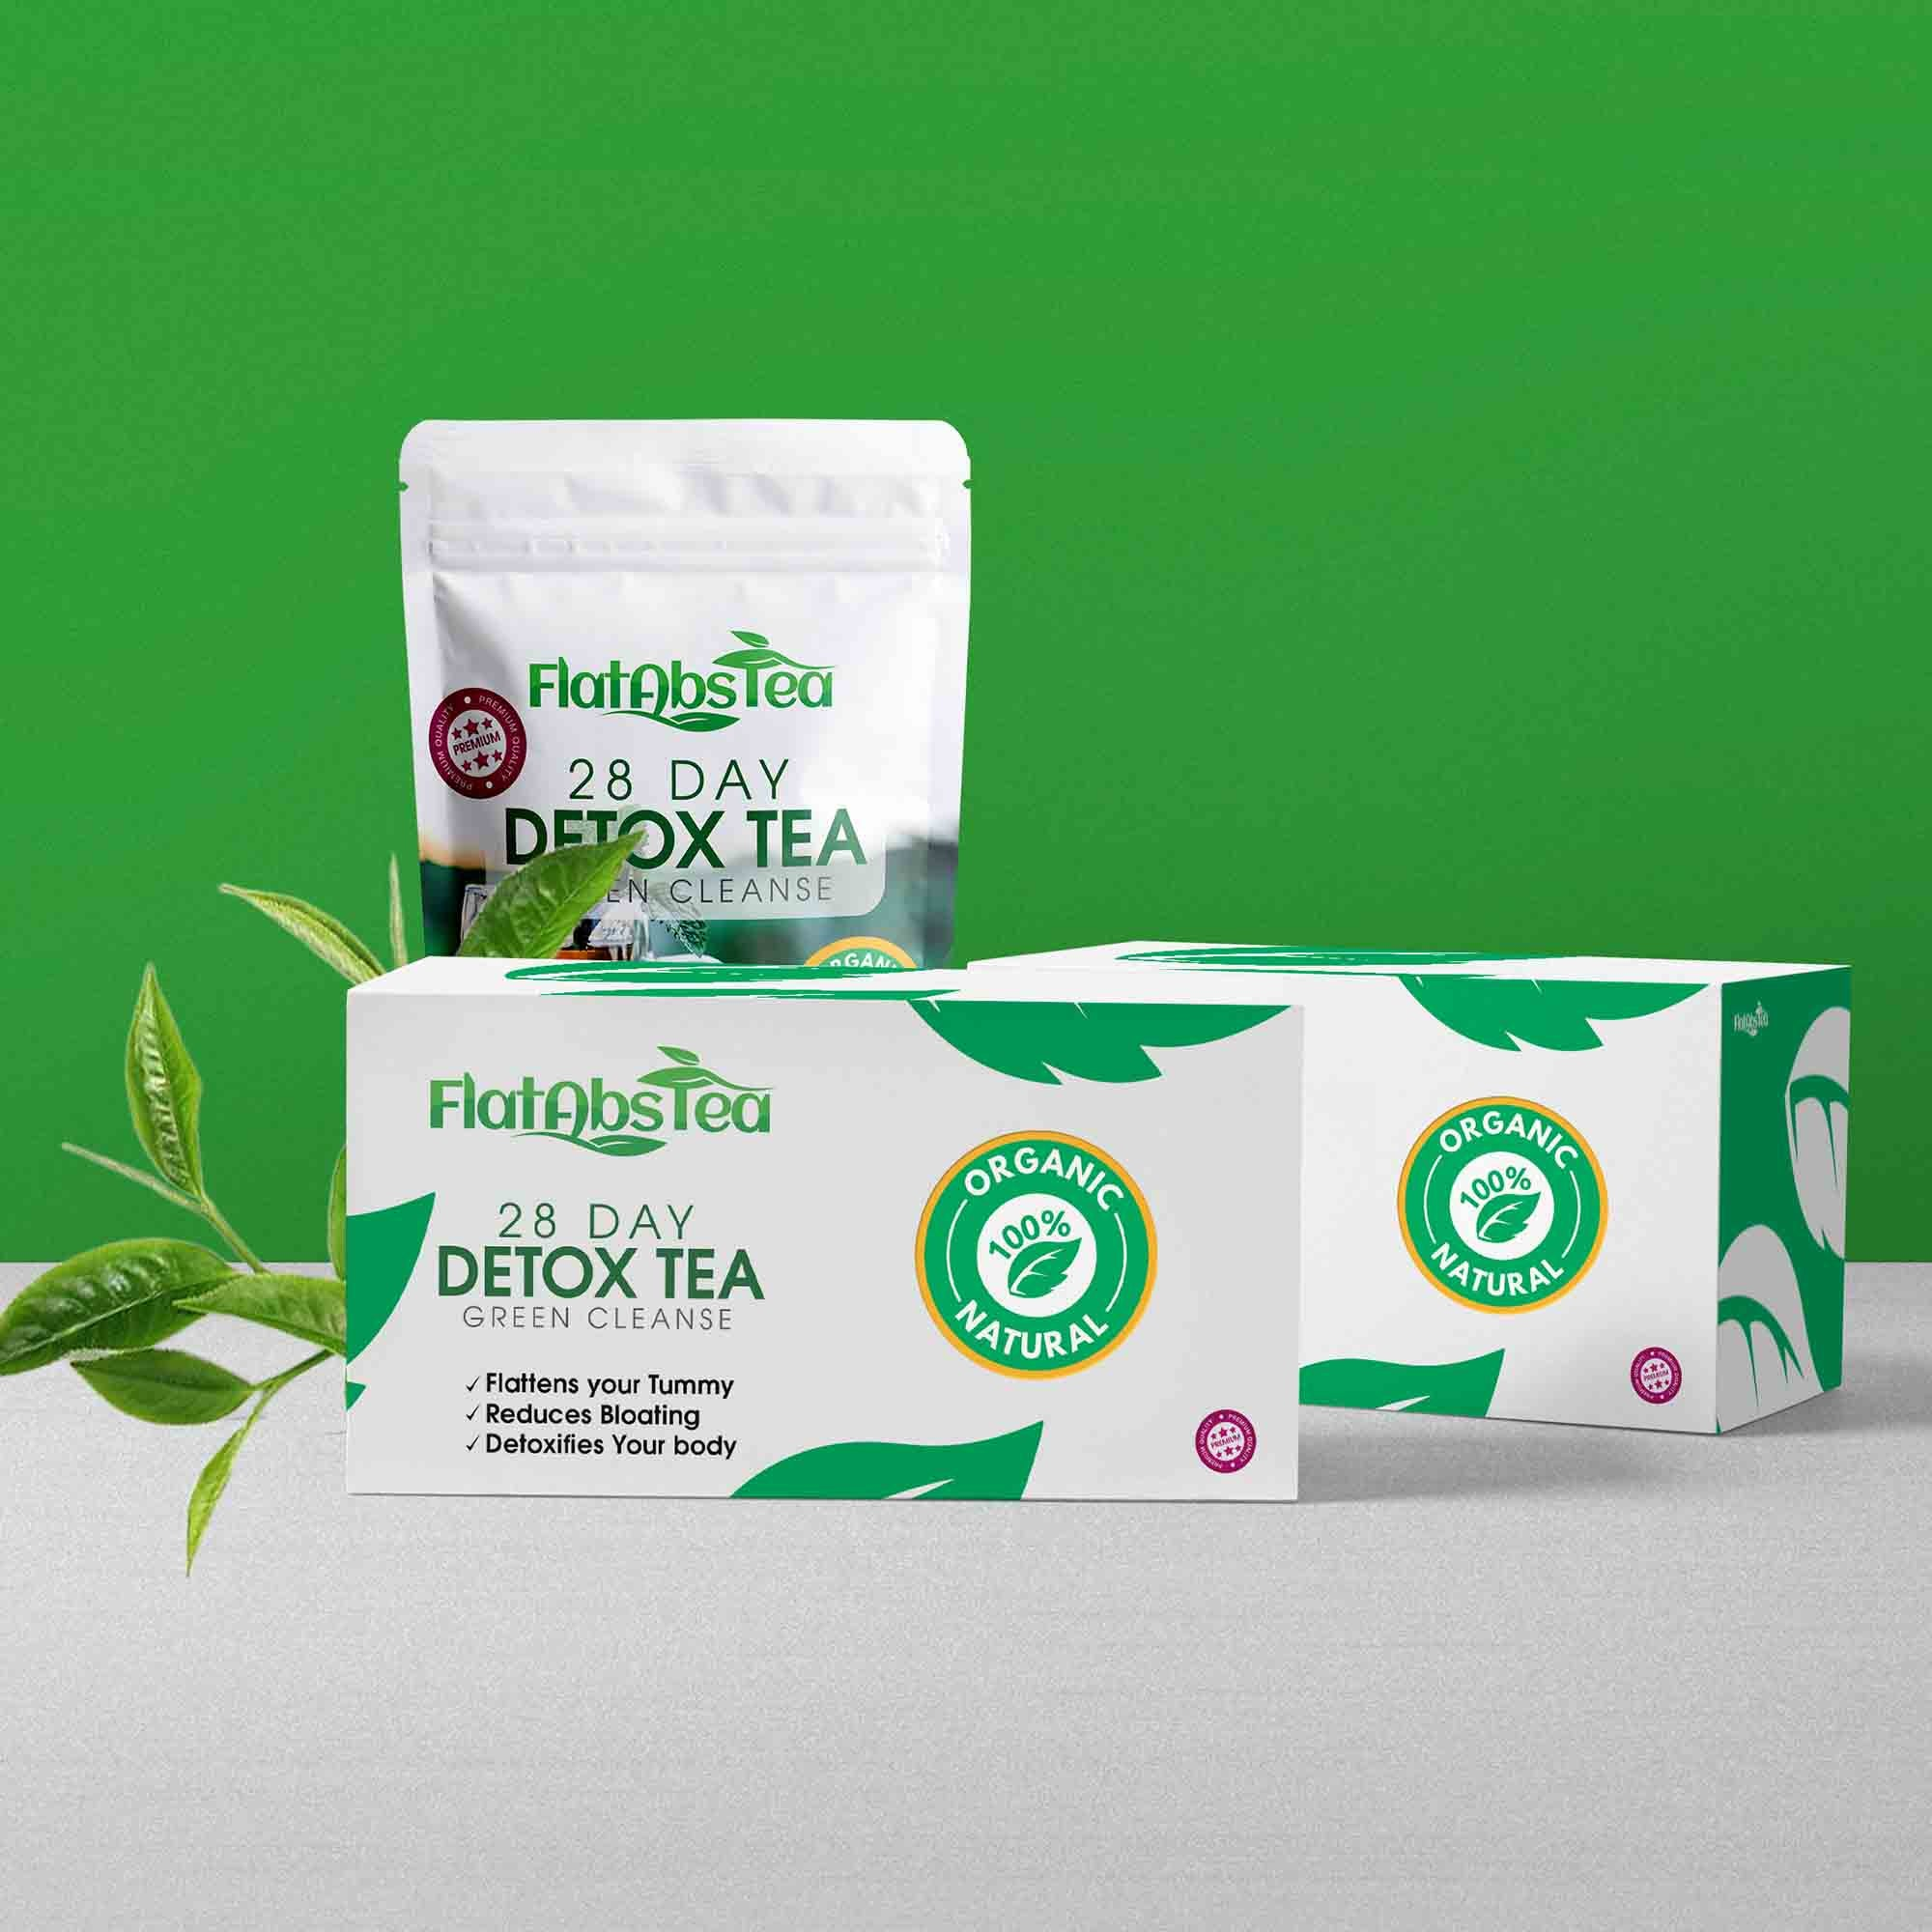 Flat Abs Detox Tea - FlatAbsTea